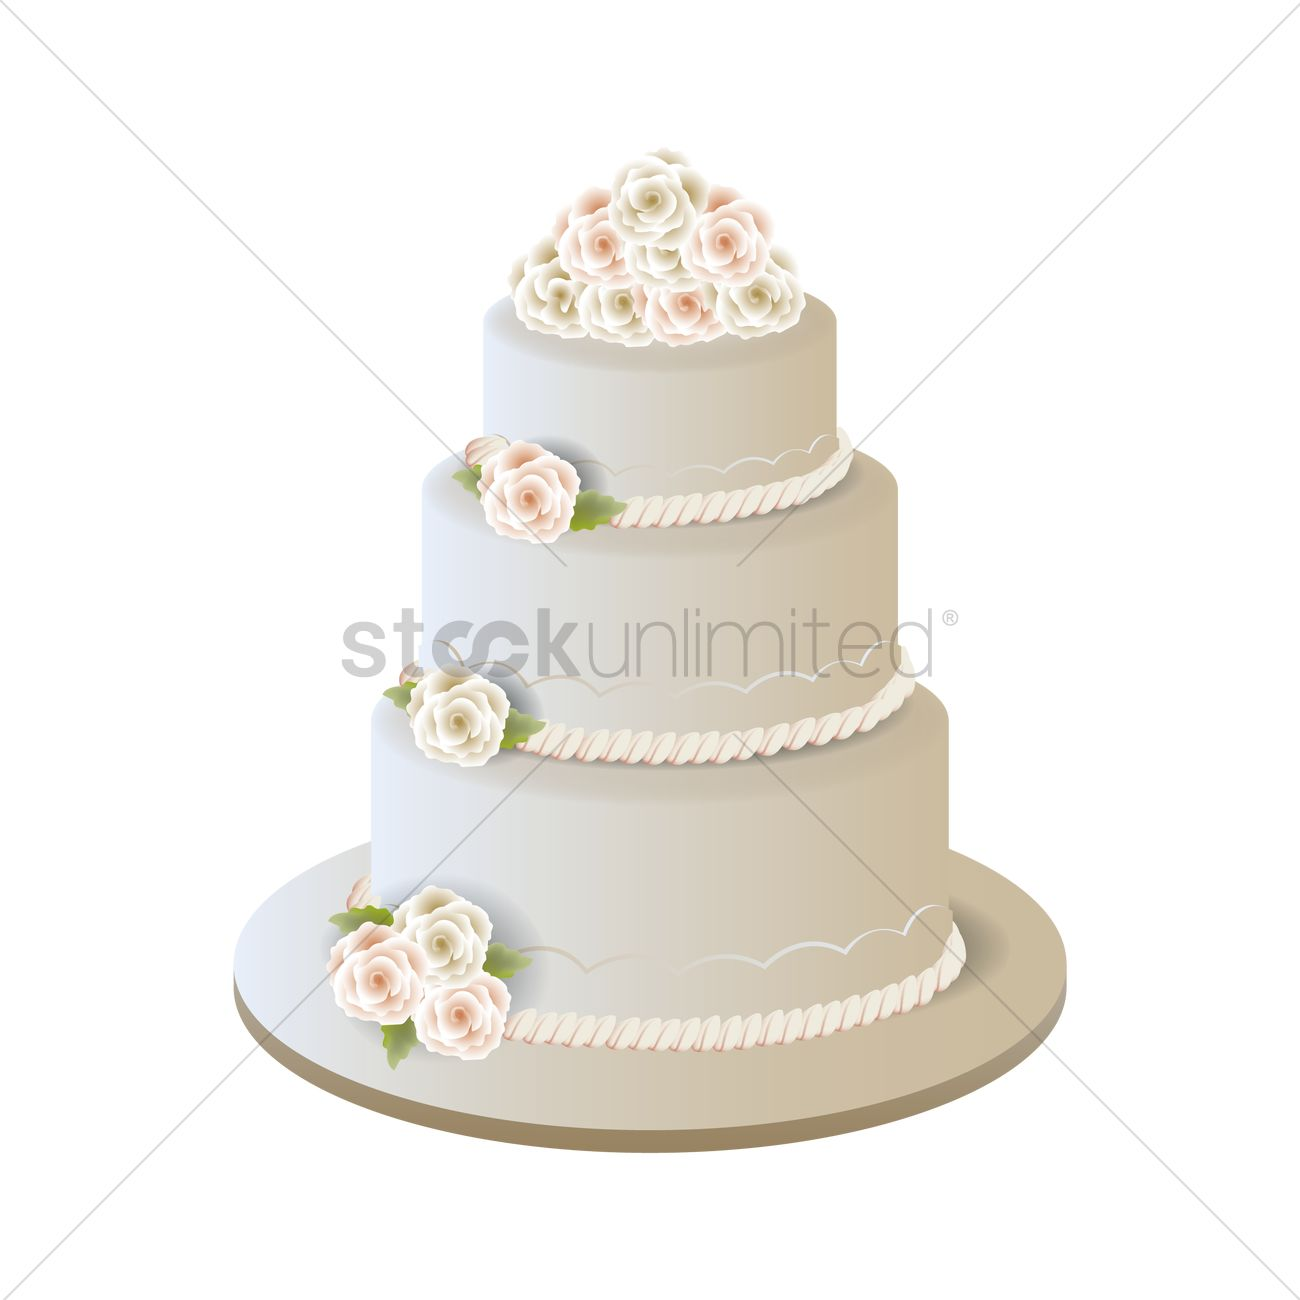 wedding cake vector wedding cake vector image 1875202 stockunlimited 26758